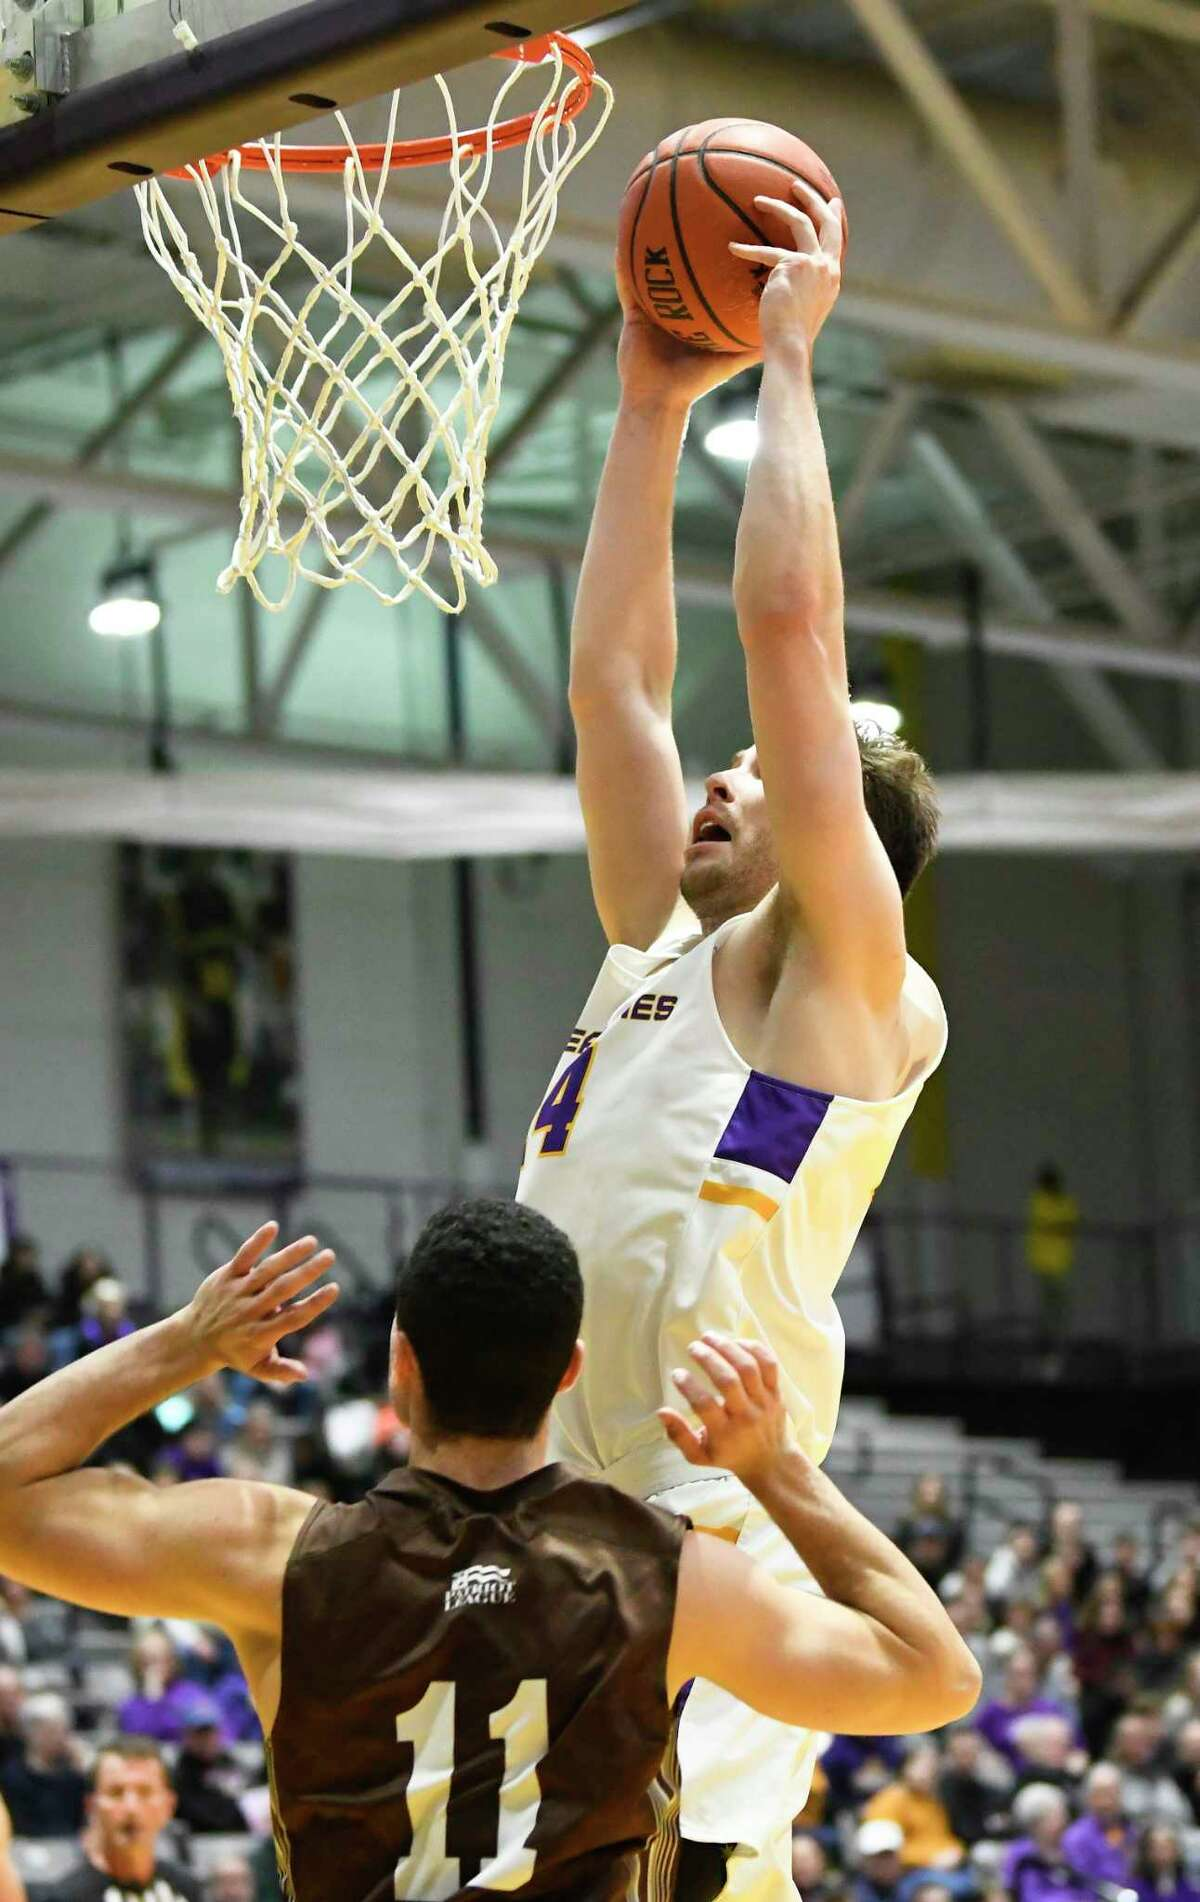 University at Albany forward Adam Lulka (14) scores against Lehigh during the first half of their home opener NCAA basketball game Saturday, Nov. 9, 2019, in Albany, N.Y. (Hans Pennink / Special to the Times Union)